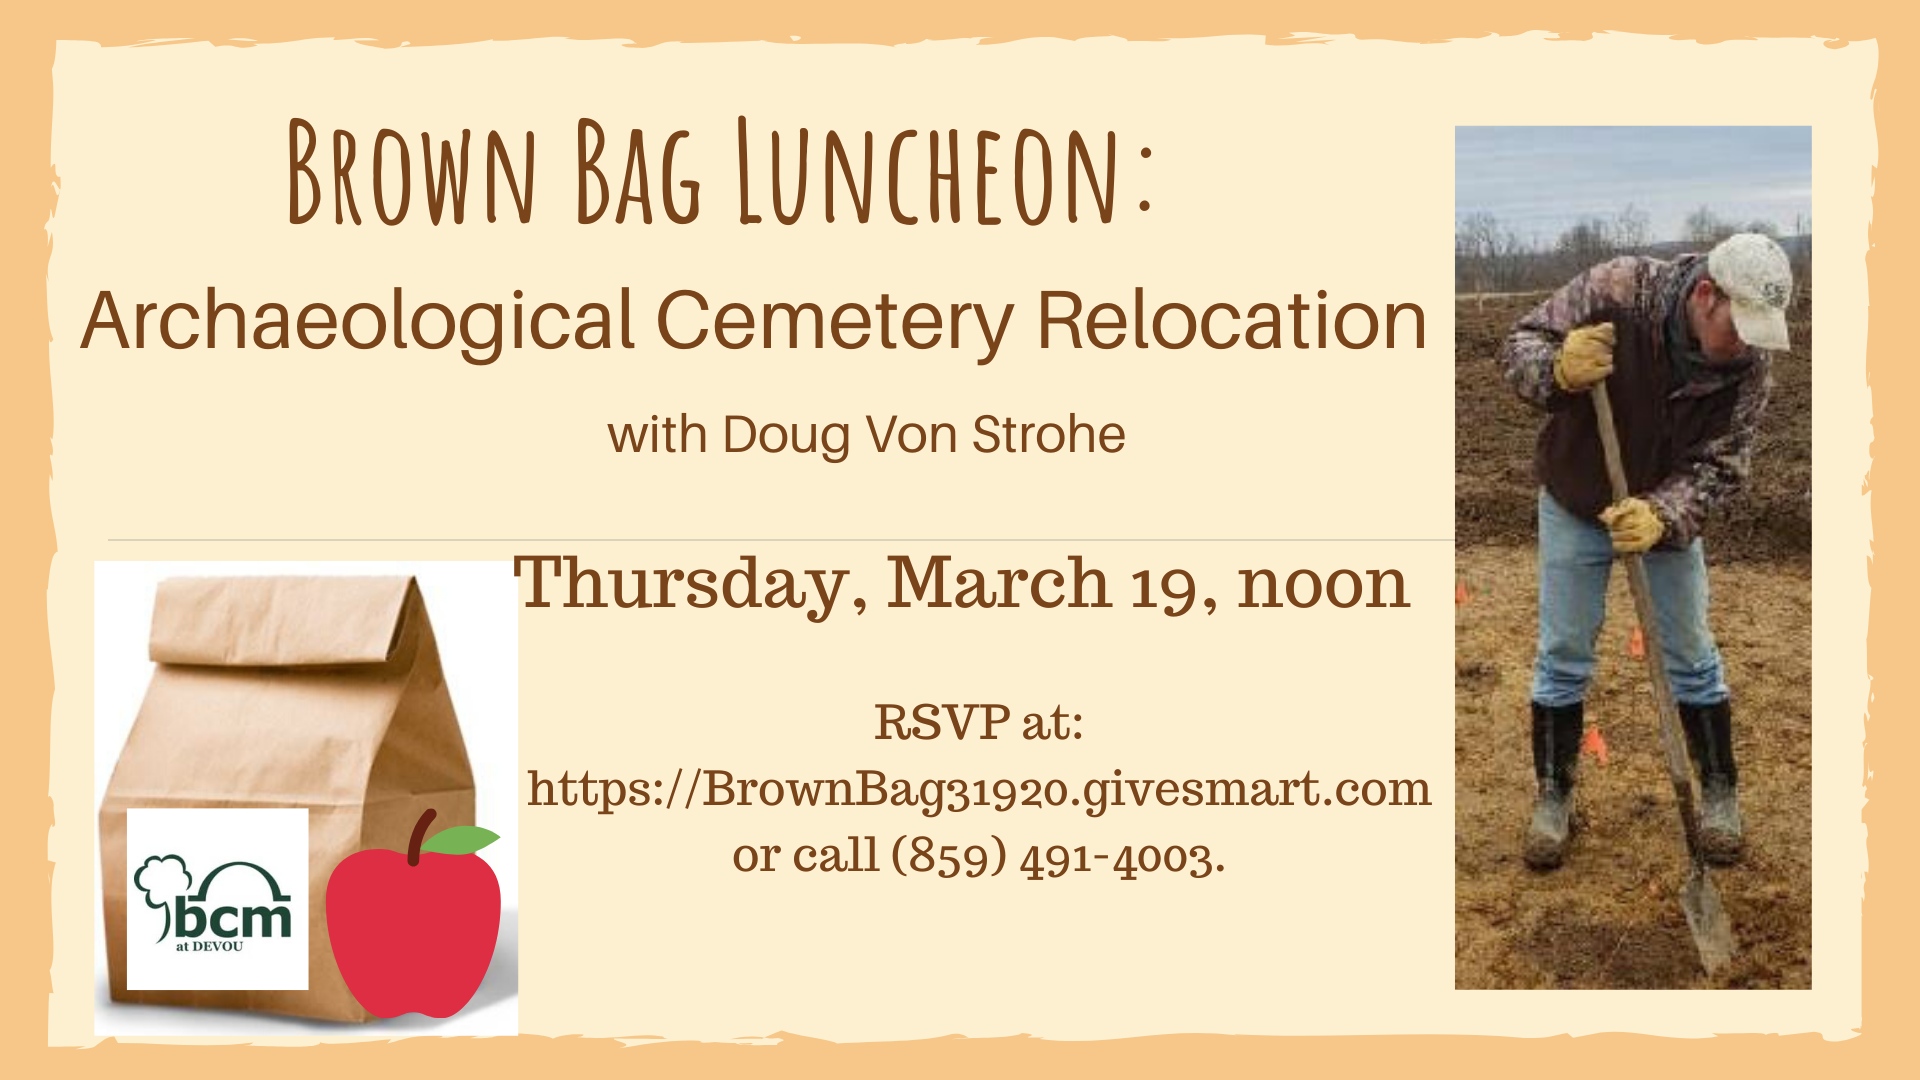 Brown Bag Luncheon Archaeological Cemetery Relocation 1